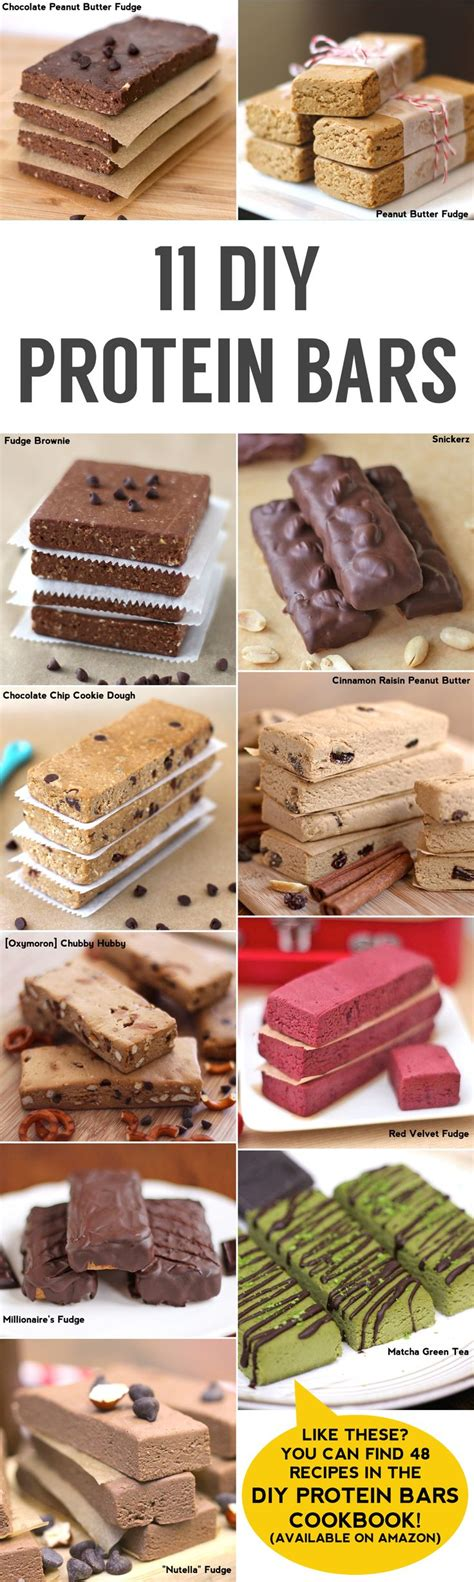 diy protein bars 1000 images about outdoors garden on pinterest